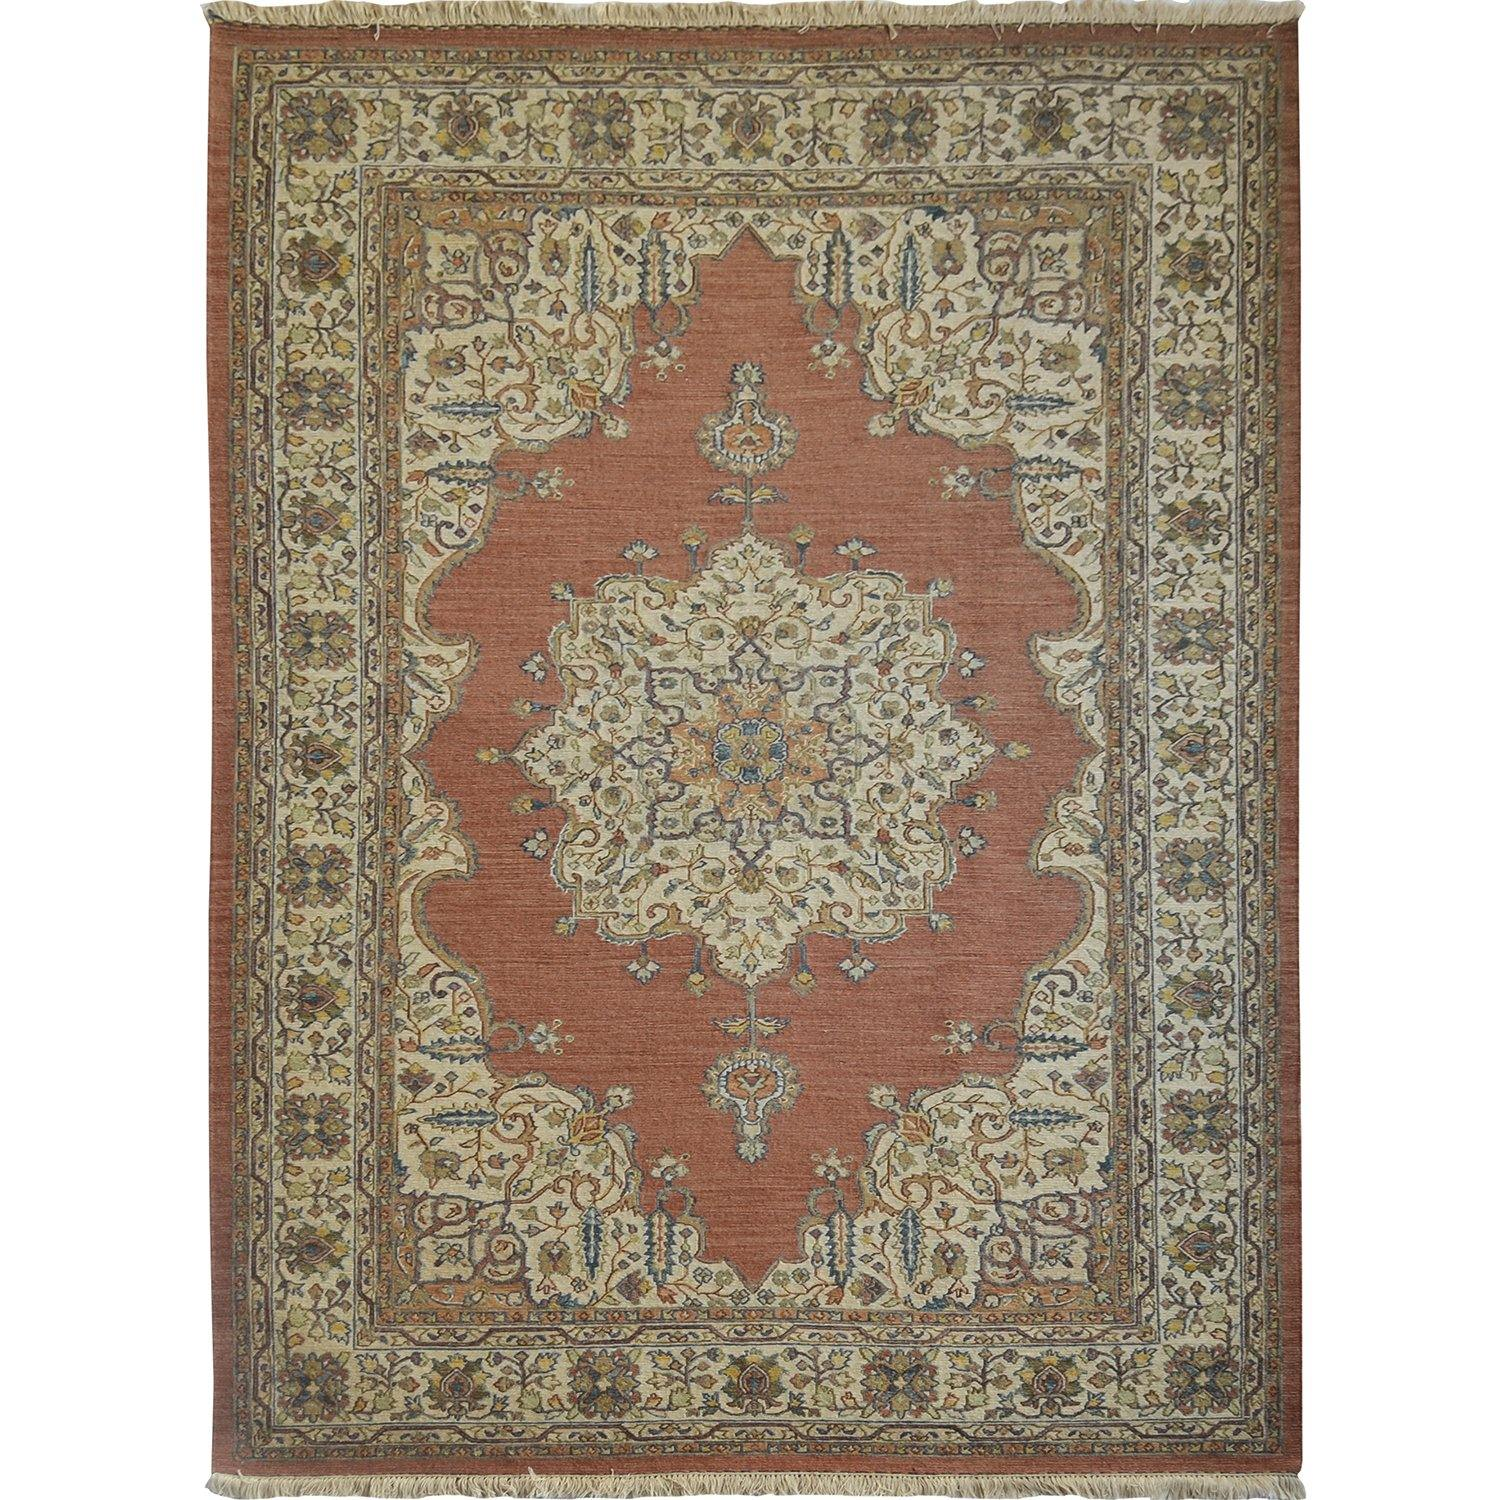 Fine Persian Sumak Kilim Rug 183cm x 223cm Persian-Rug | House-of-Haghi | NewMarket | Auckland | NZ | Handmade Persian Rugs | Hand Knotted Persian Rugs